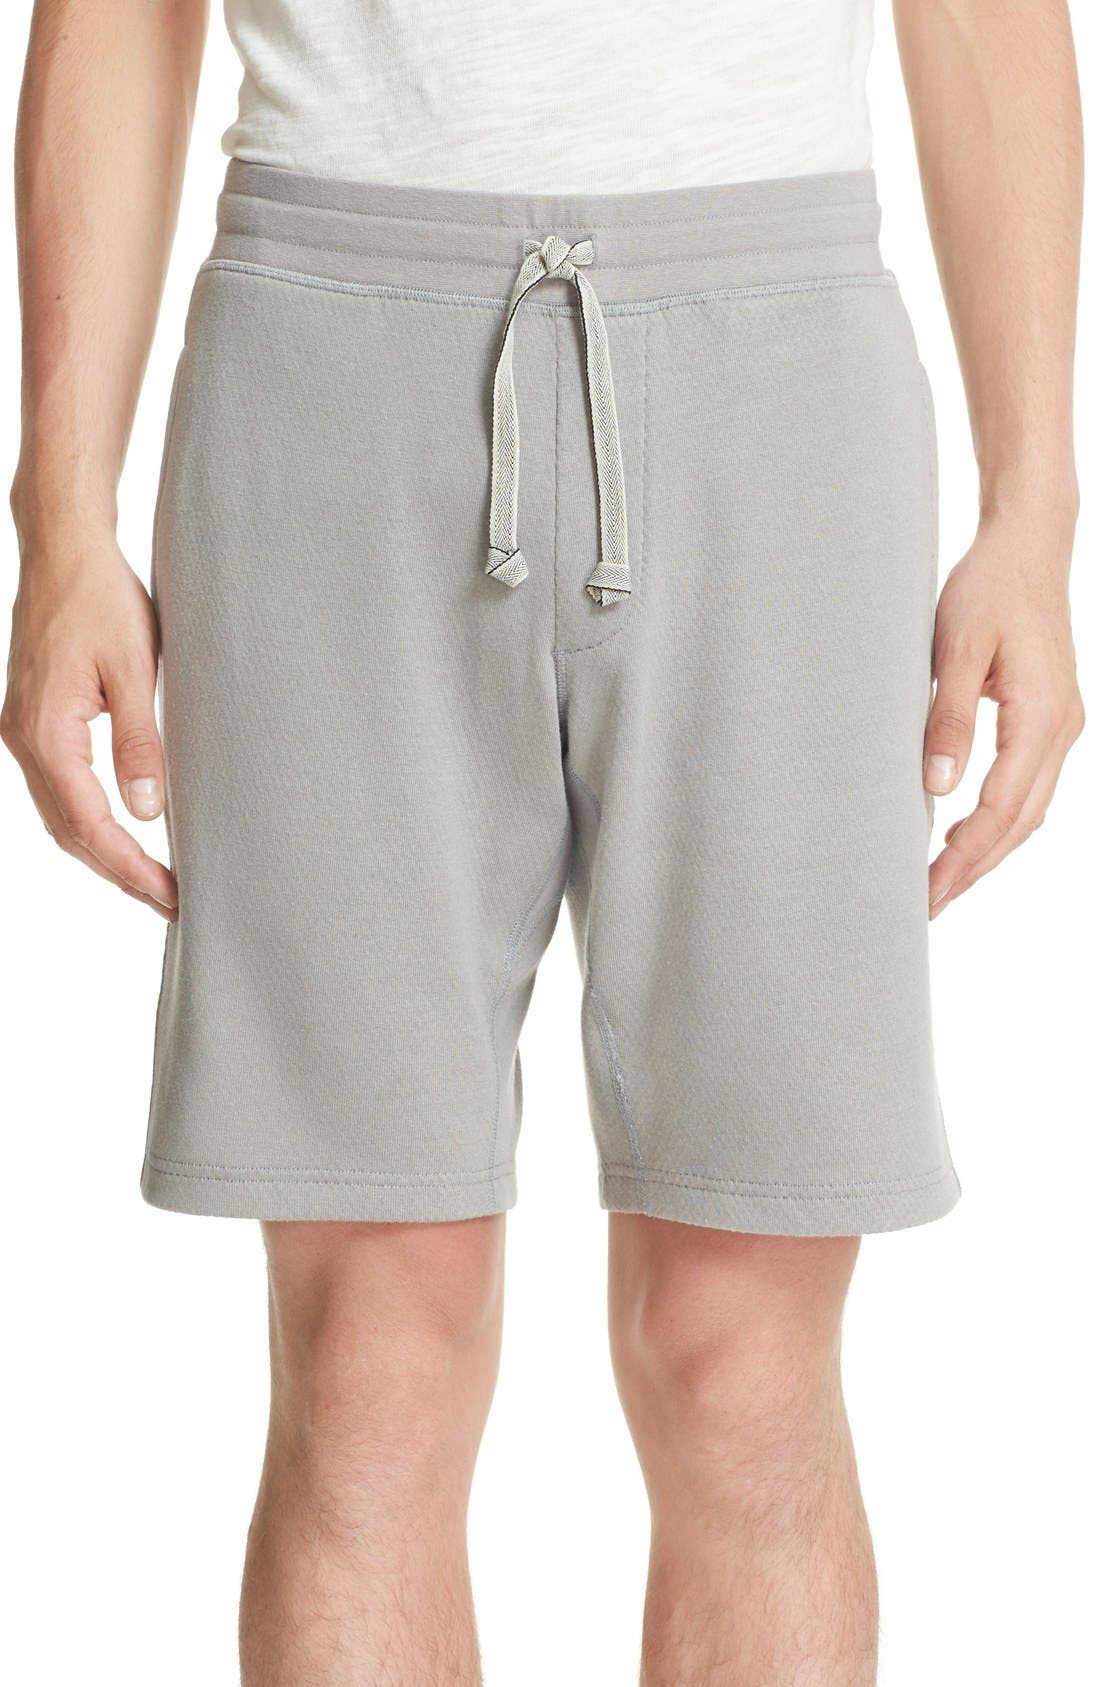 Alternate Image 1 Selected - wings + horns x adidas Bonded Jersey Shorts